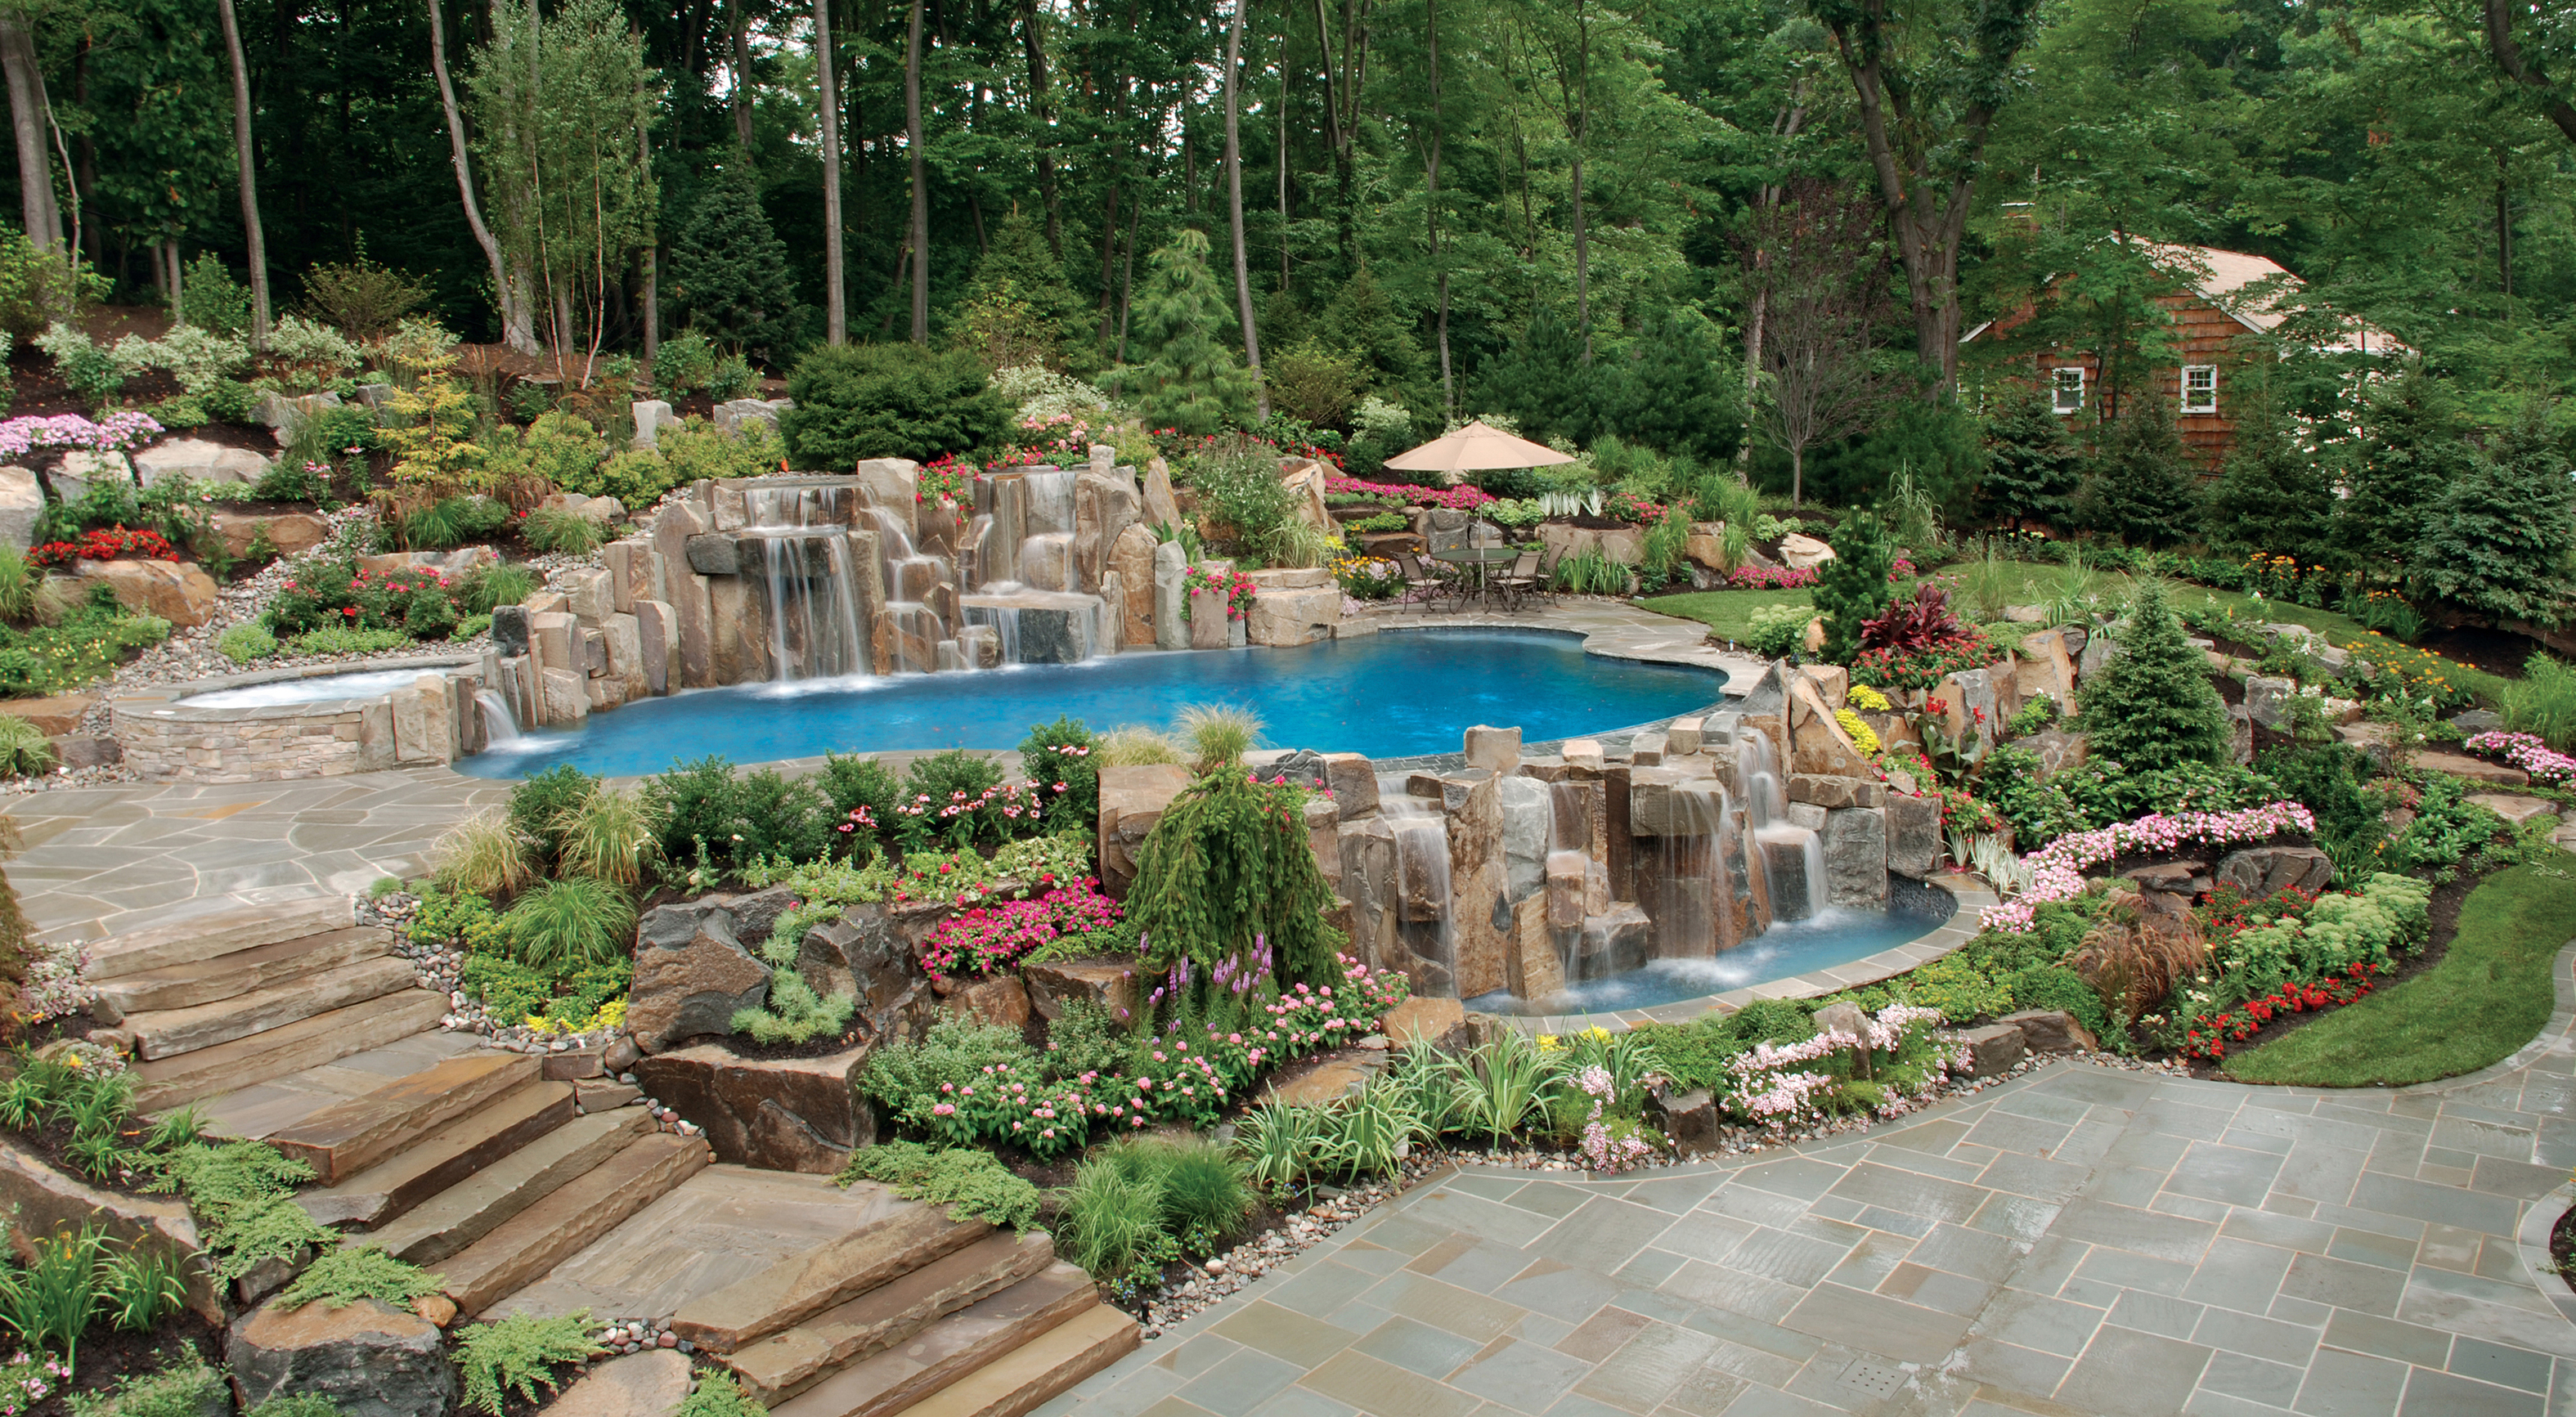 Remarkable Back Yard Swimming Pool Landscaping 3150 x 1733 · 5530 kB · jpeg